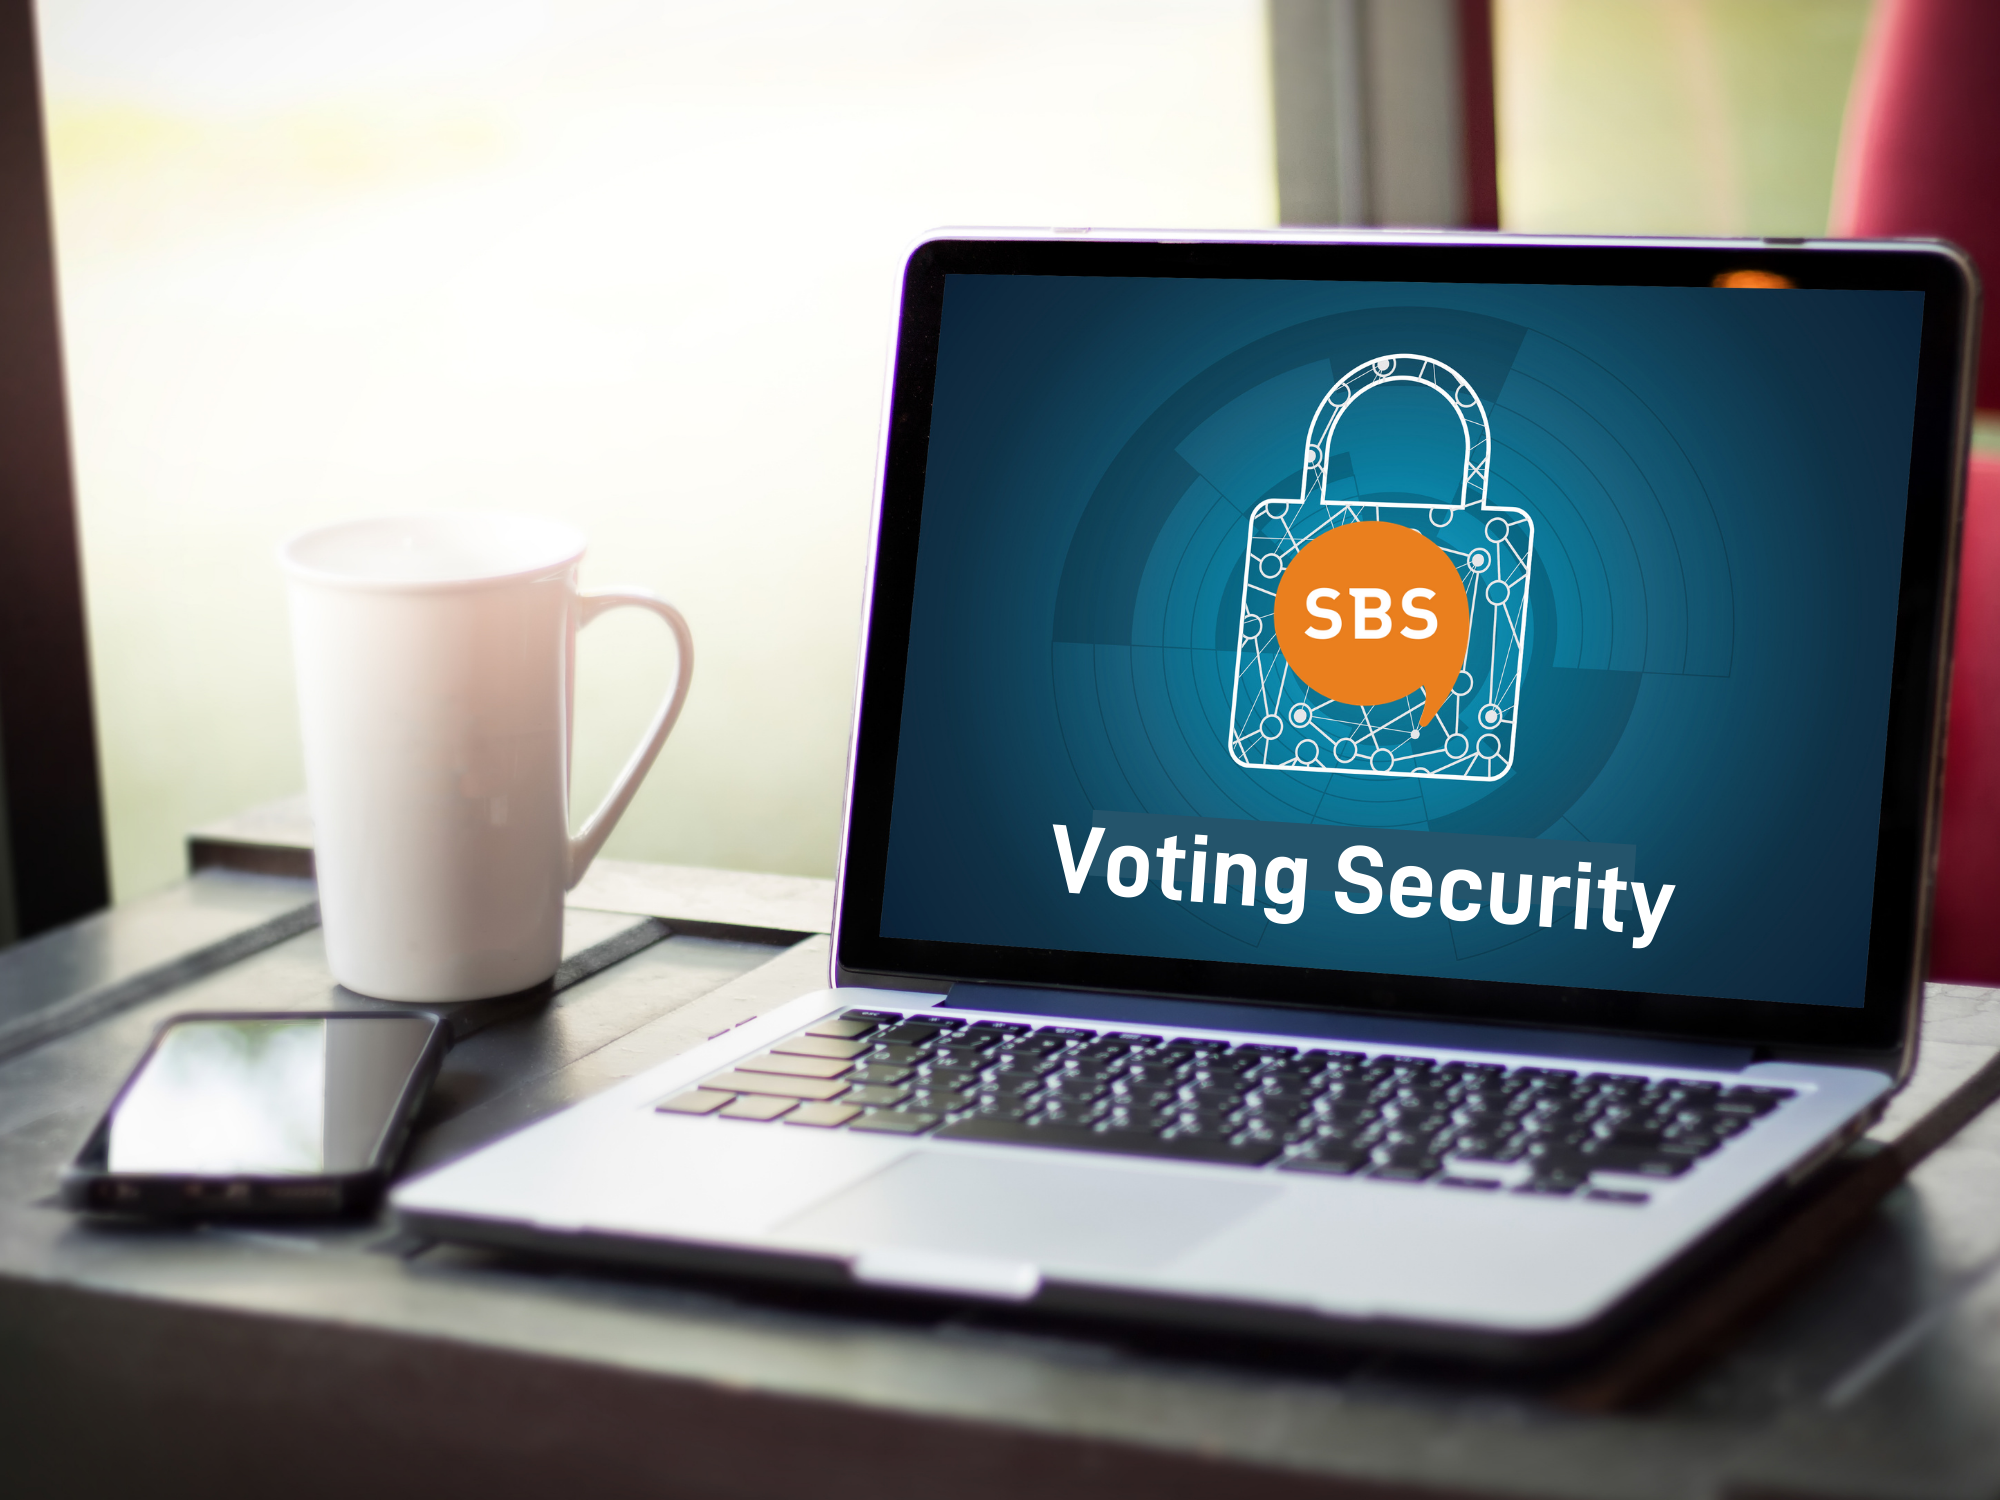 Voting Security